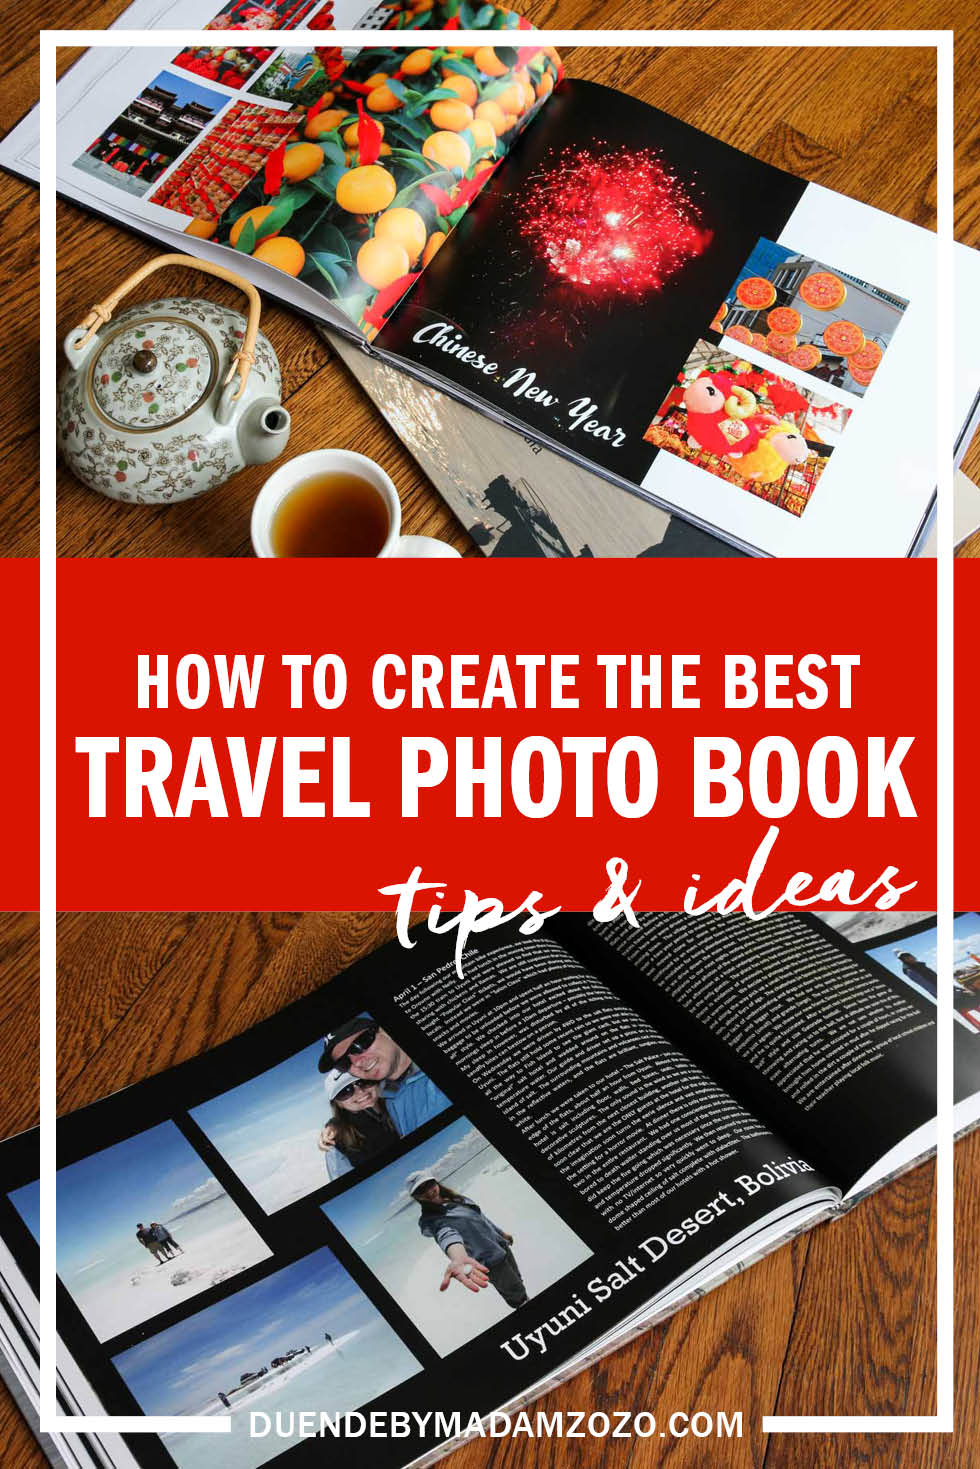 Tips Ideas For Creating Your Best Travel Photo Book